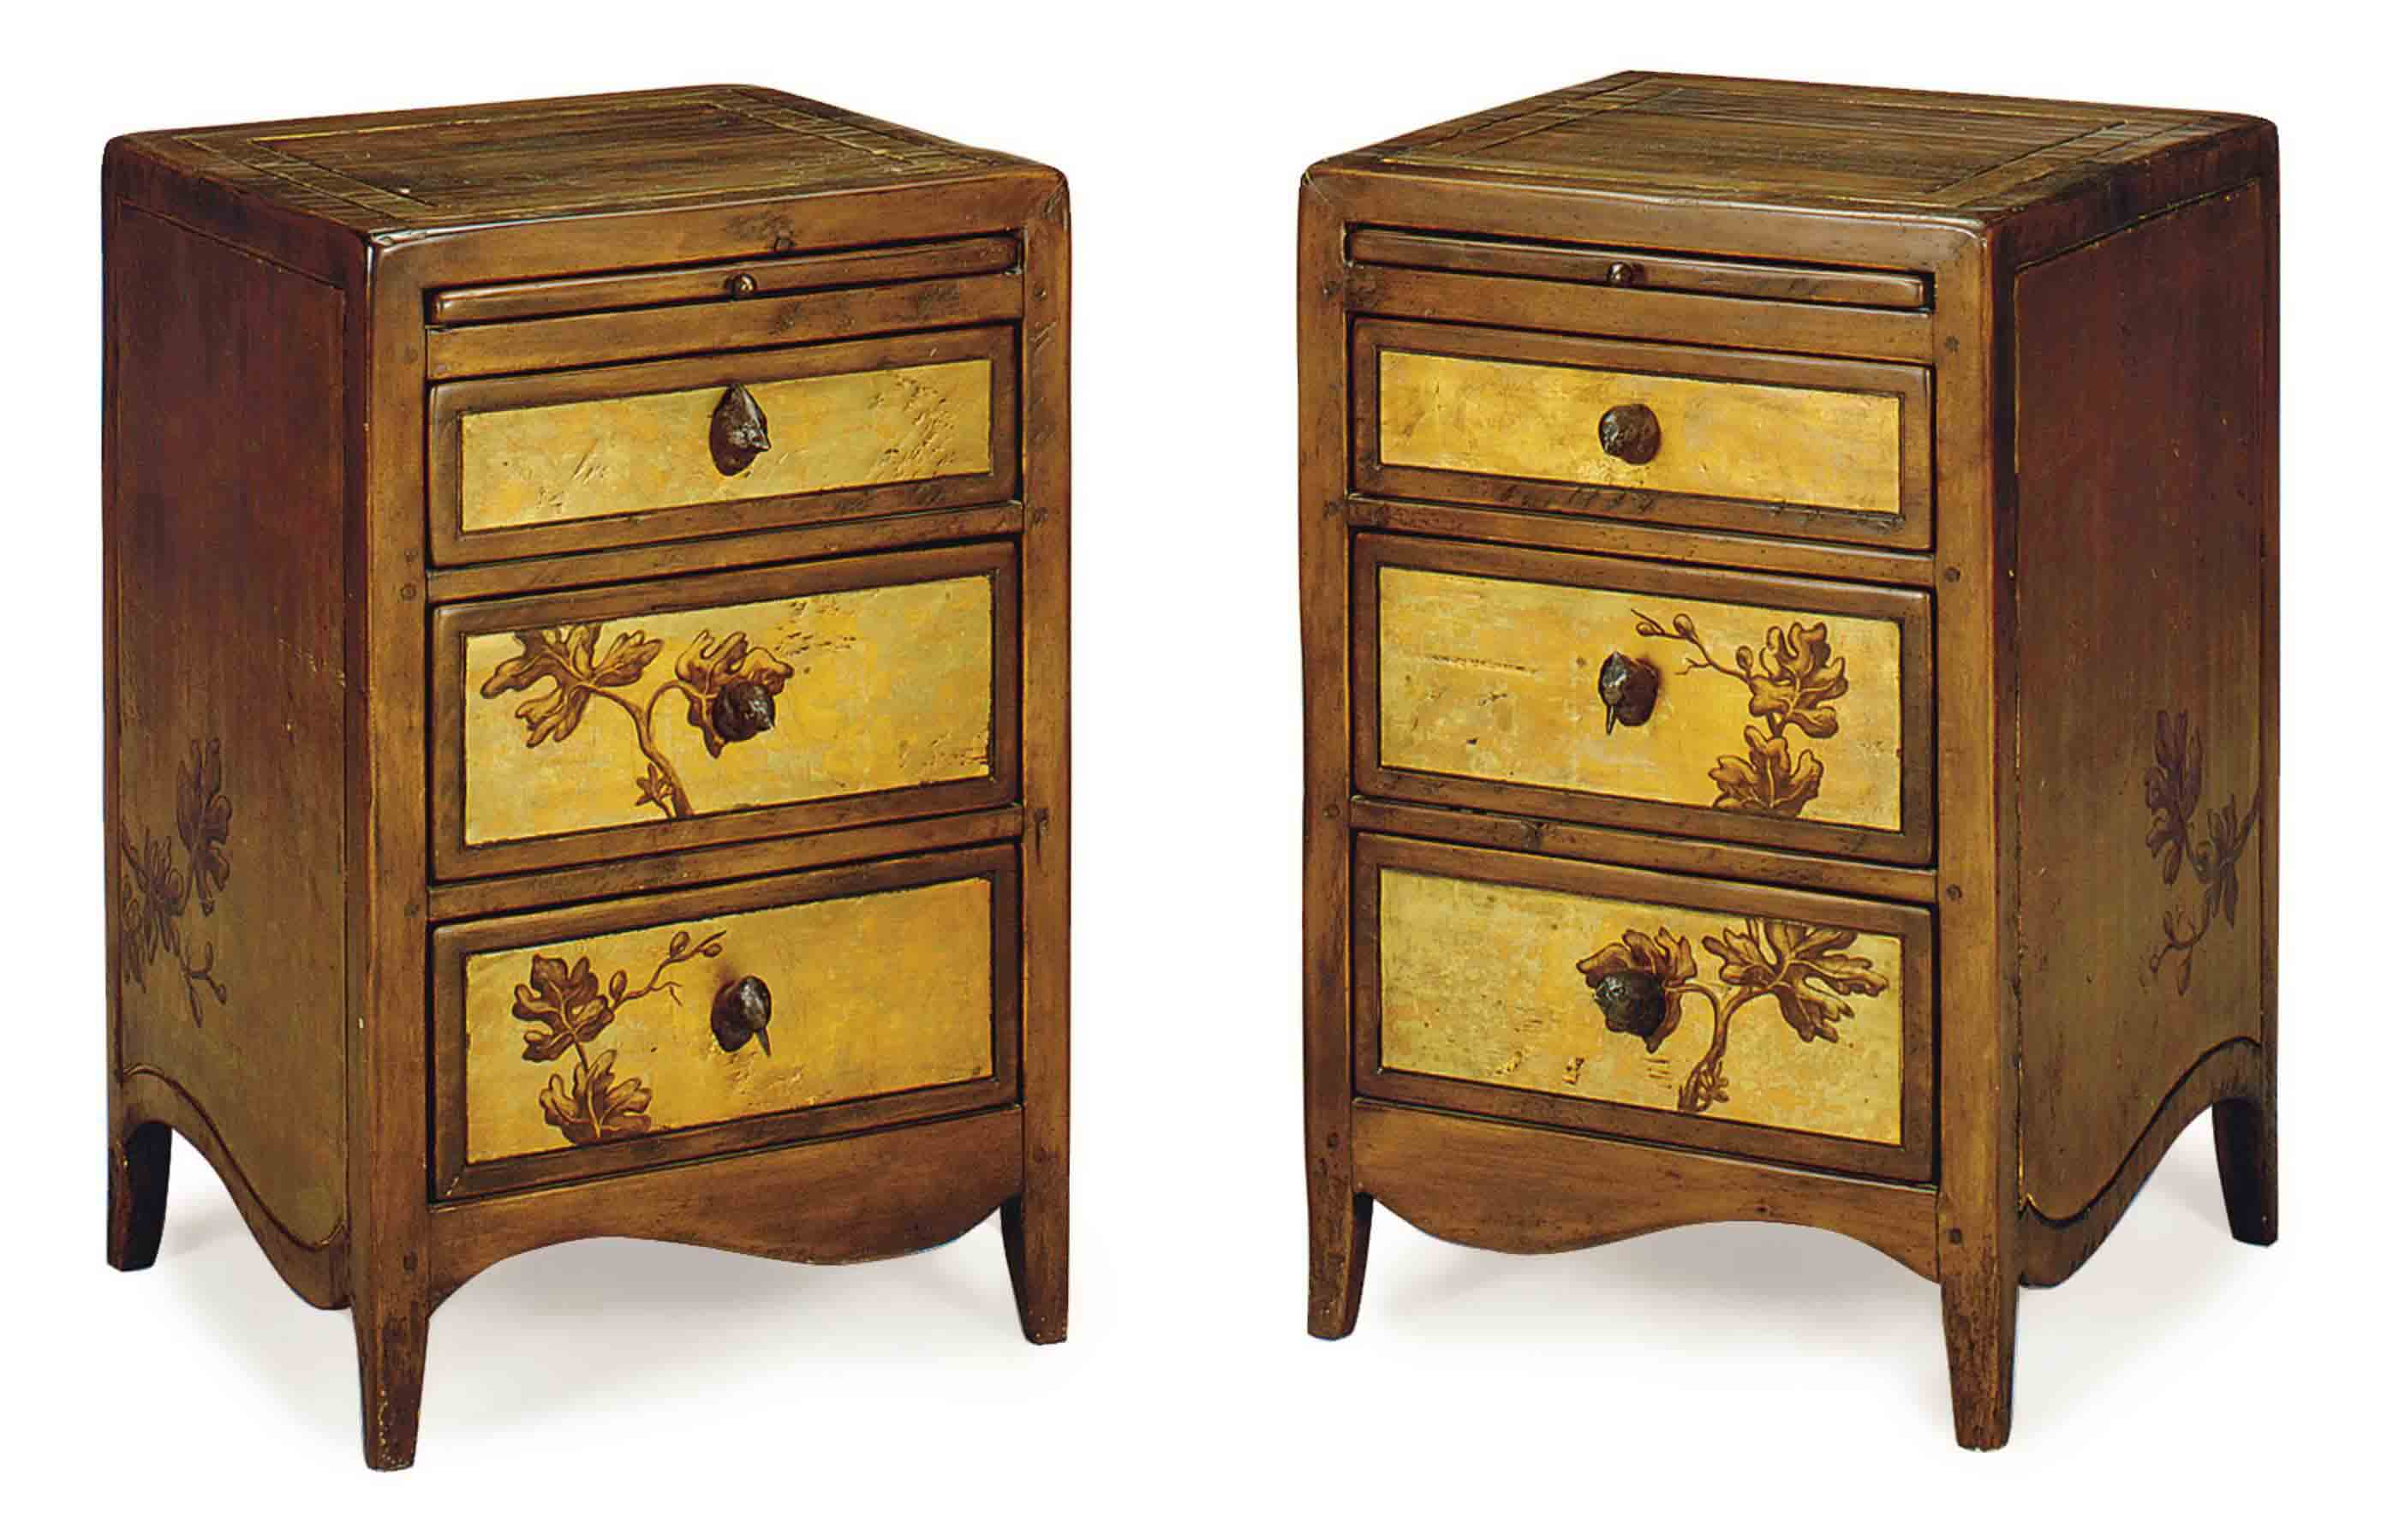 A PAIR OF FRUITWOOD AND GILT-DECORATED BEDSIDE TABLES,